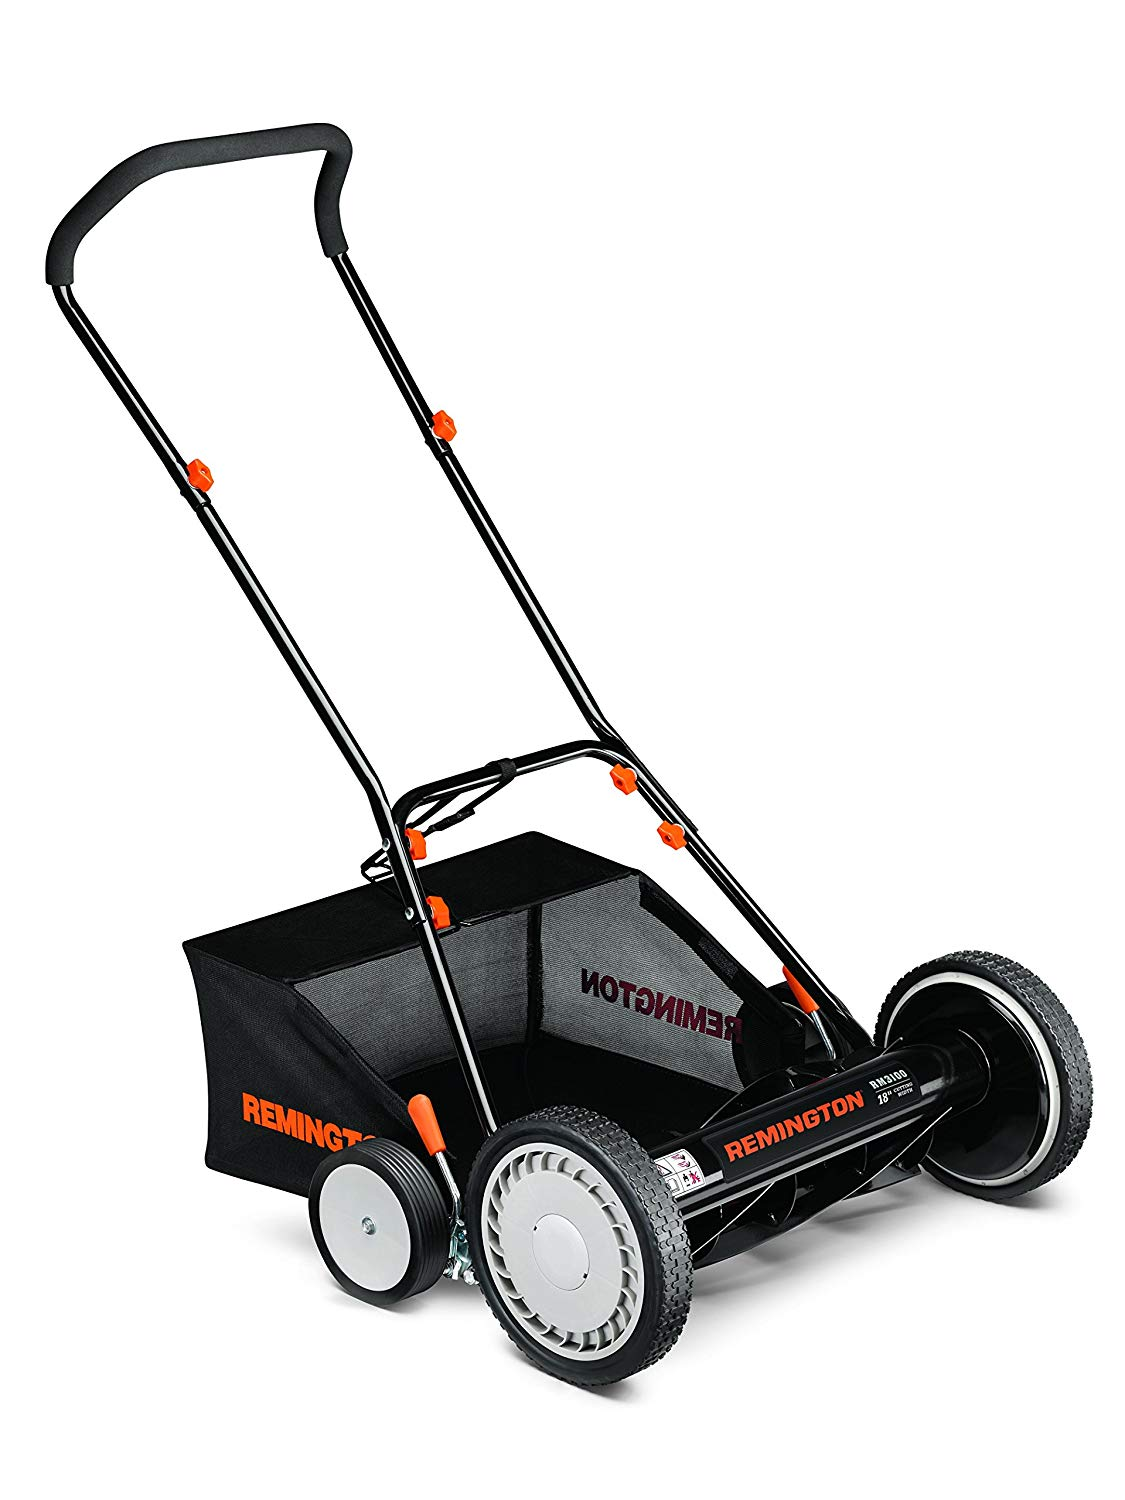 Remington 18-Inch Reel Push Mower